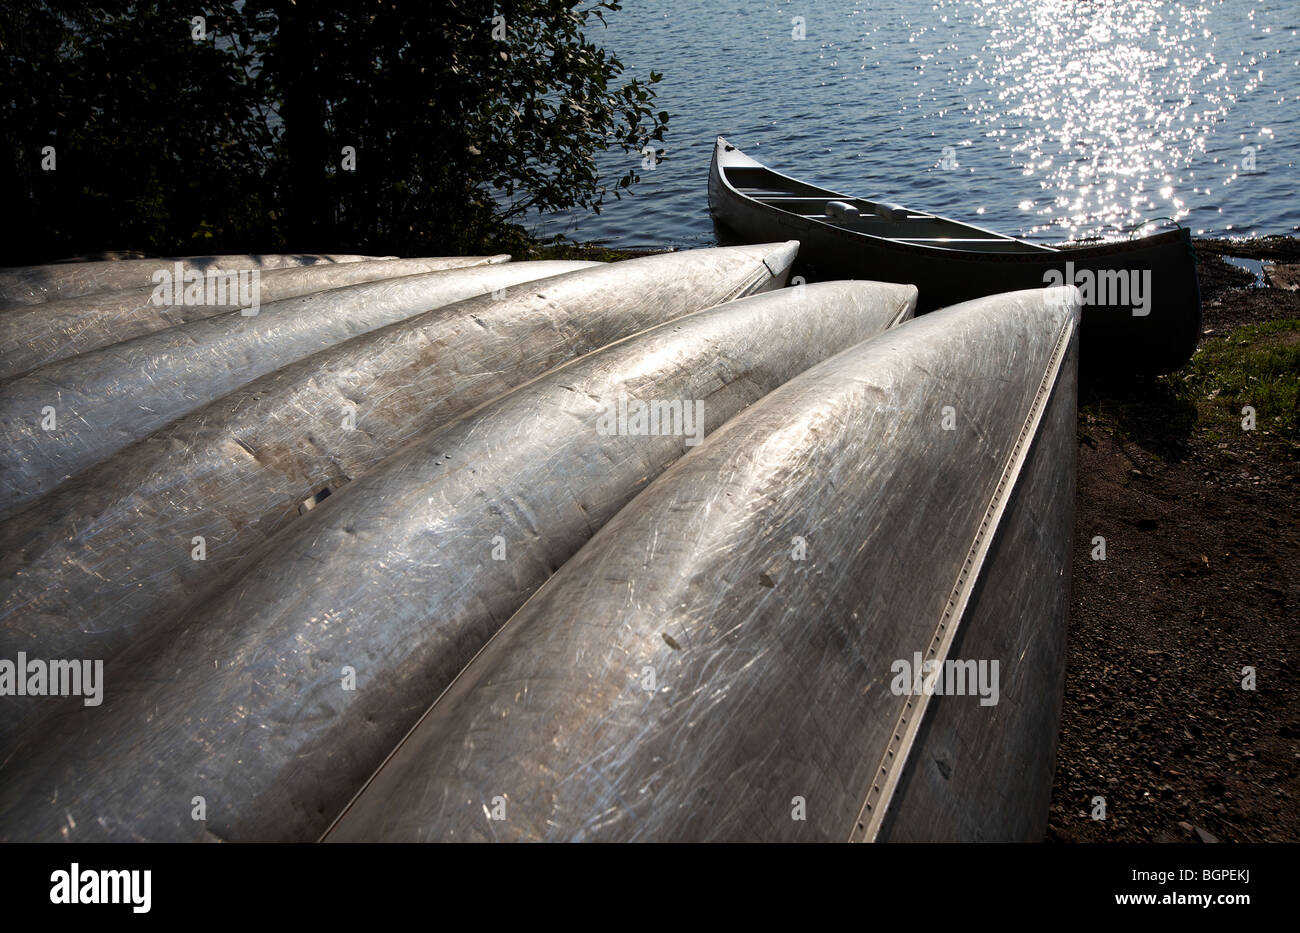 Aluminum Canoes lined up along the shore of a northern Minnesota lake. - Stock Image